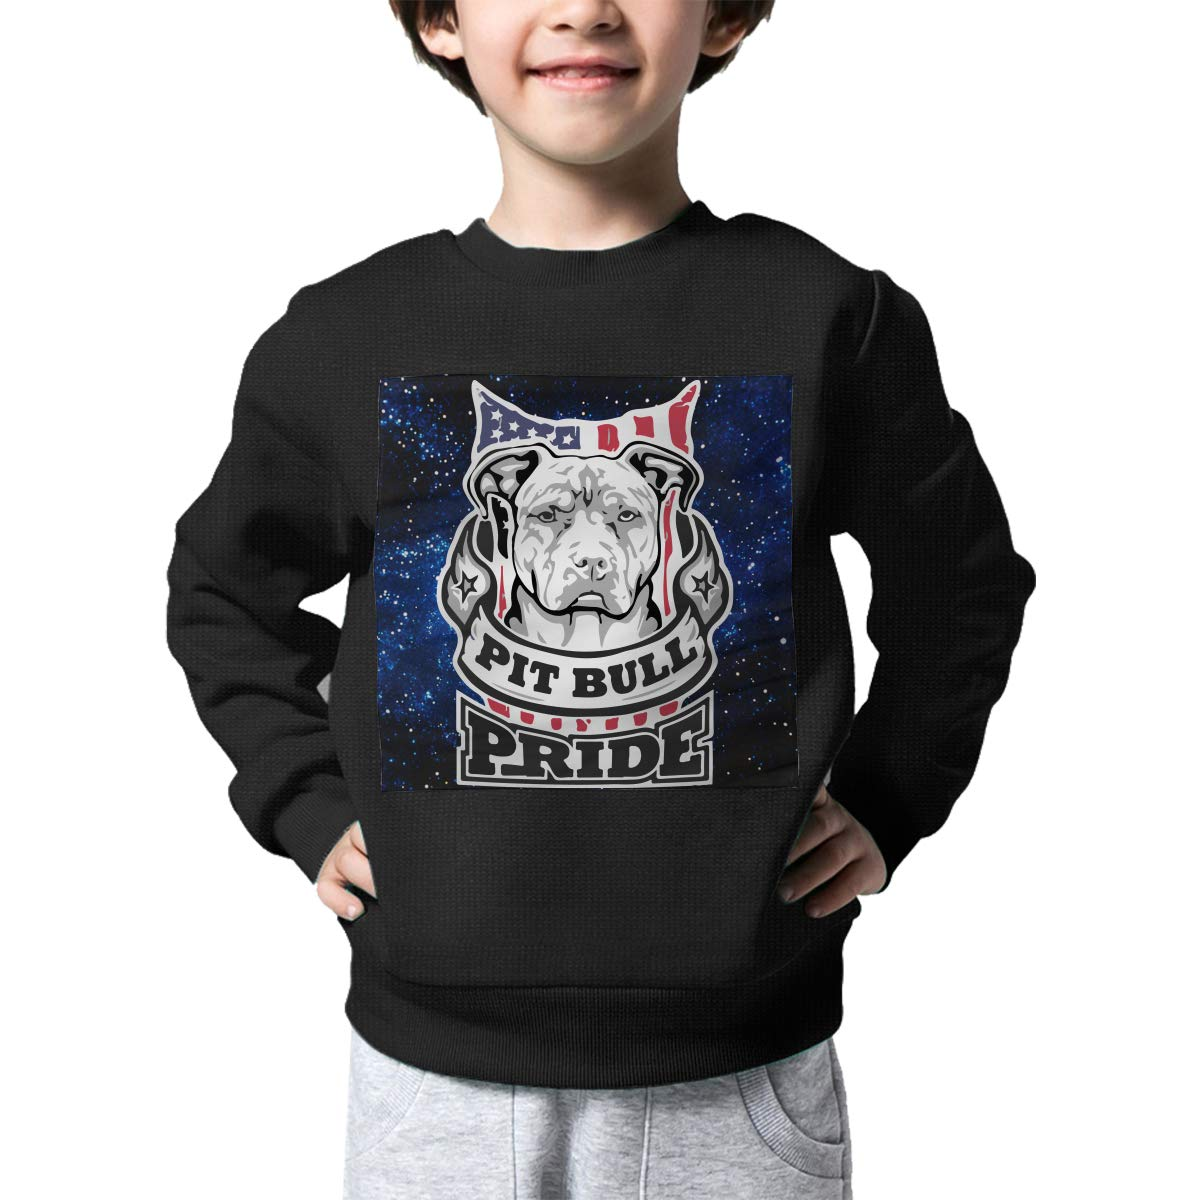 Warm/&Q90 Pit Bull Pride Print Baby Boys Childrens Crew Neck Sweater Long Sleeve Cute Knit Top Blouse